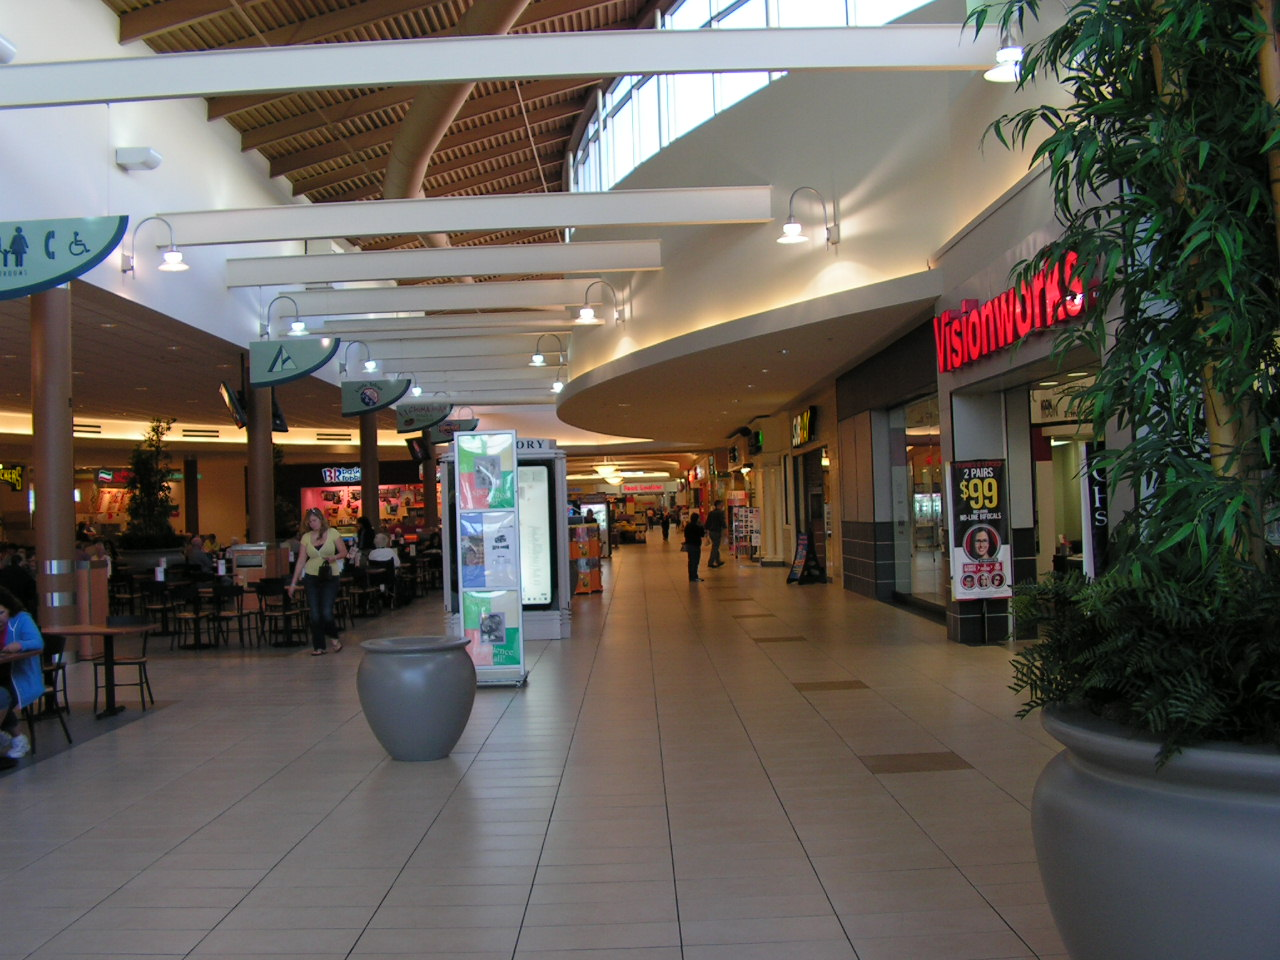 millcreek mall review The millcreek mall is not just the main building but also the several plazas surrounding it as well as the restaurants and hotels the main building, which has nearly 200 stores and kiosks, is recently renovated and very clean.